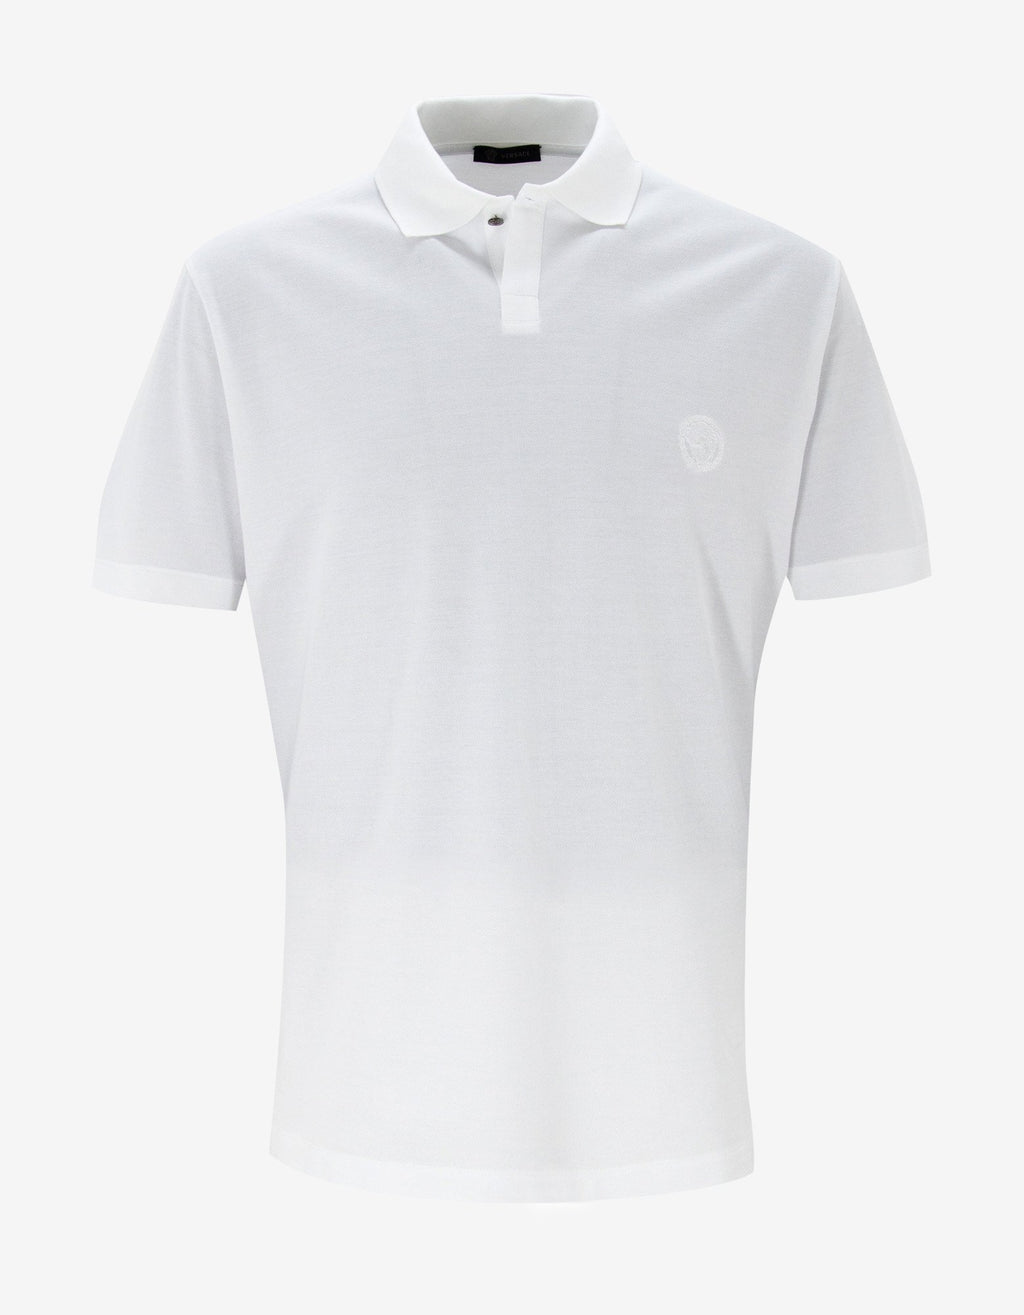 White Medusa Crest Polo T-Shirt -